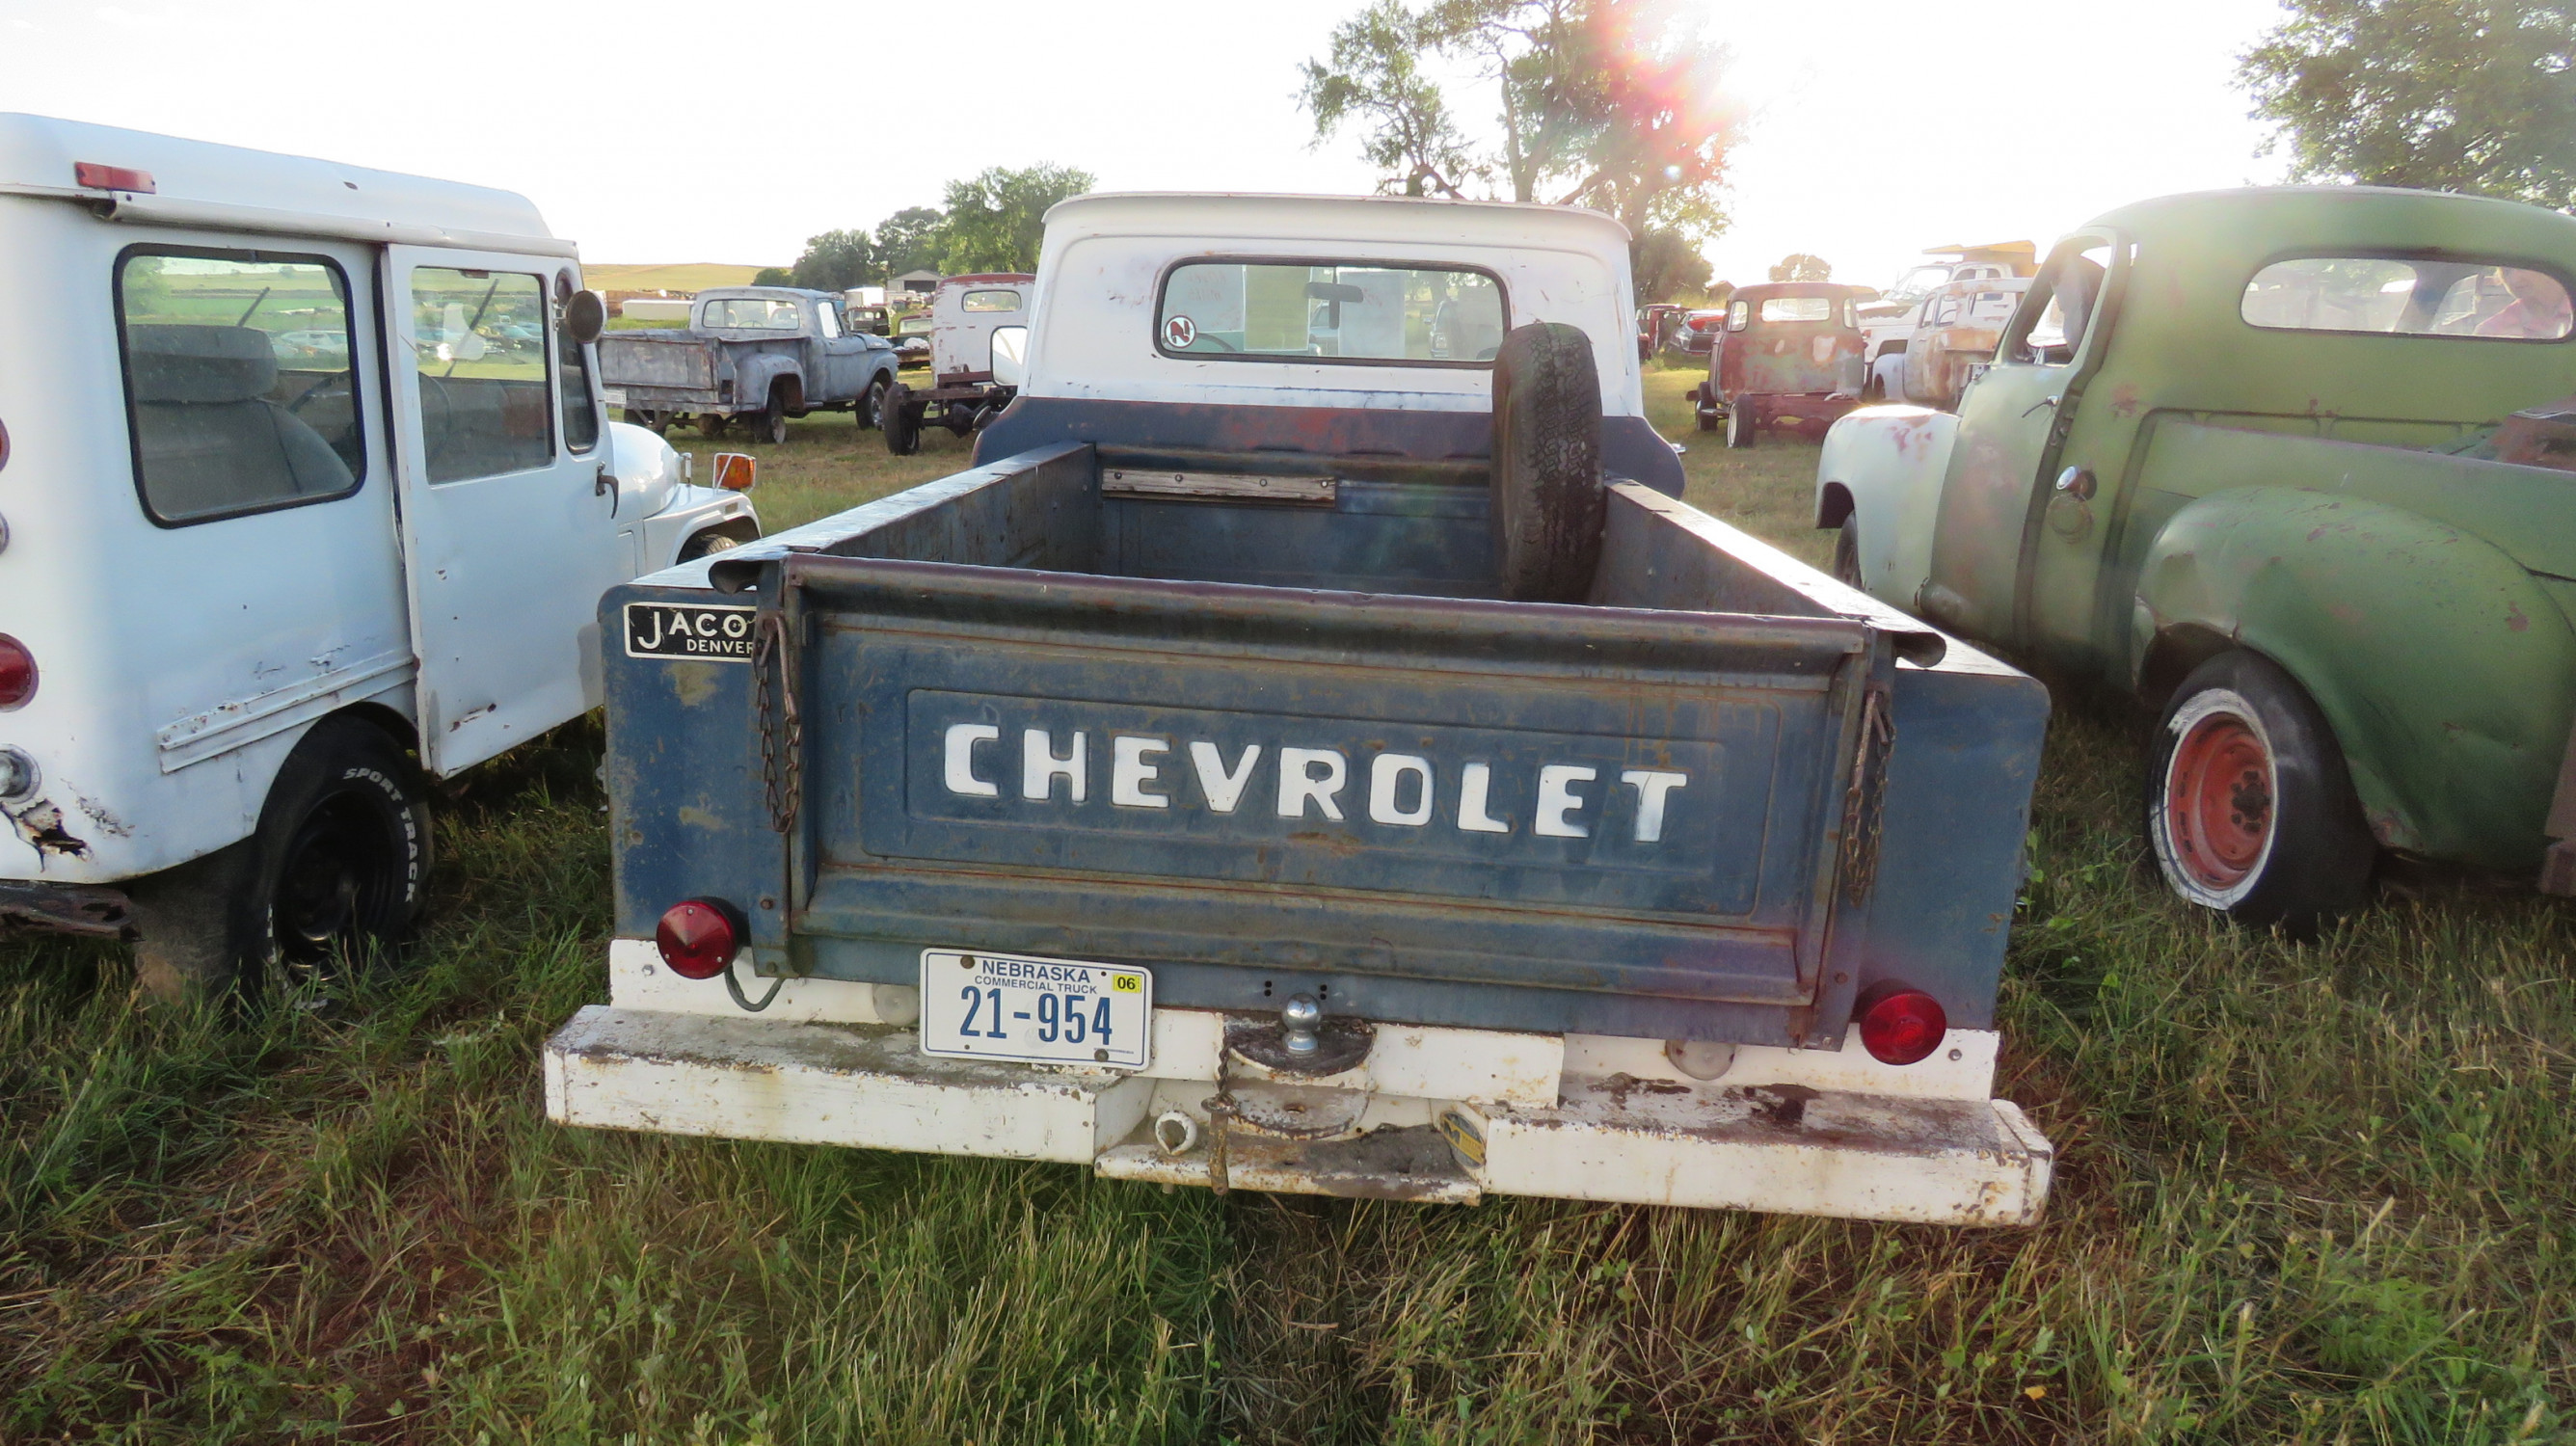 1966 CHEVROLET PICKUP - Image 4